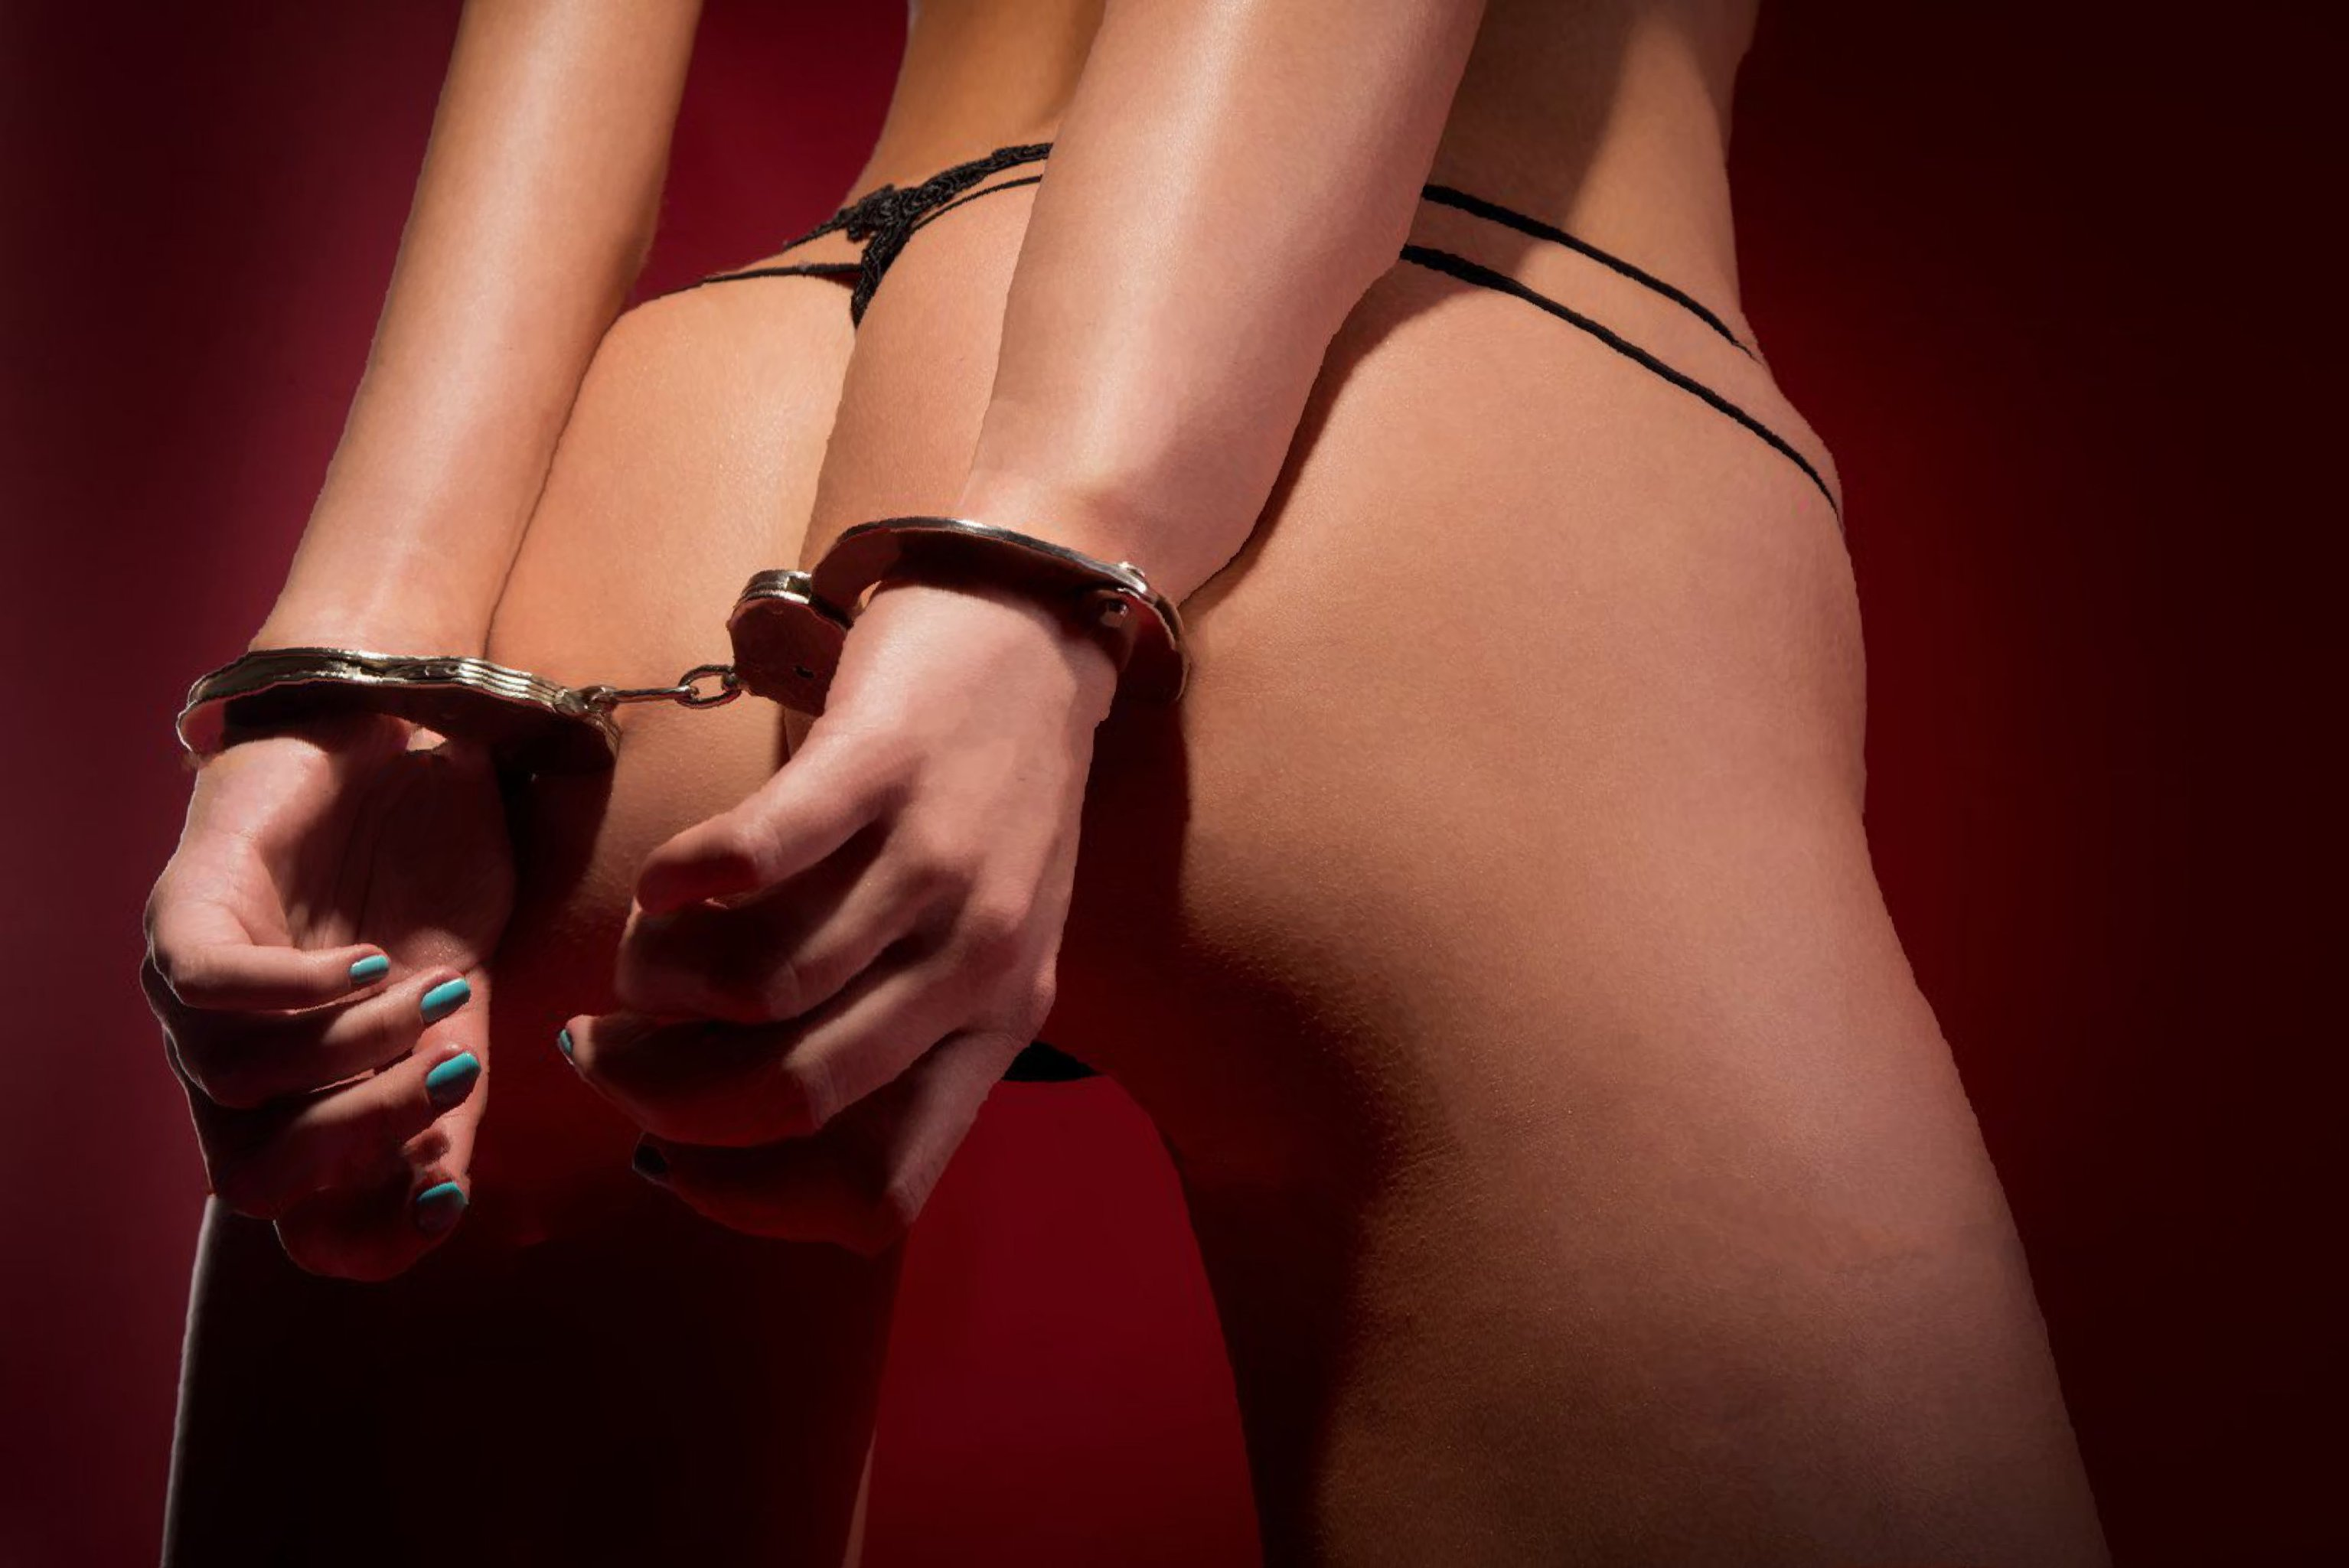 Wall handcuff bdsm matchless message